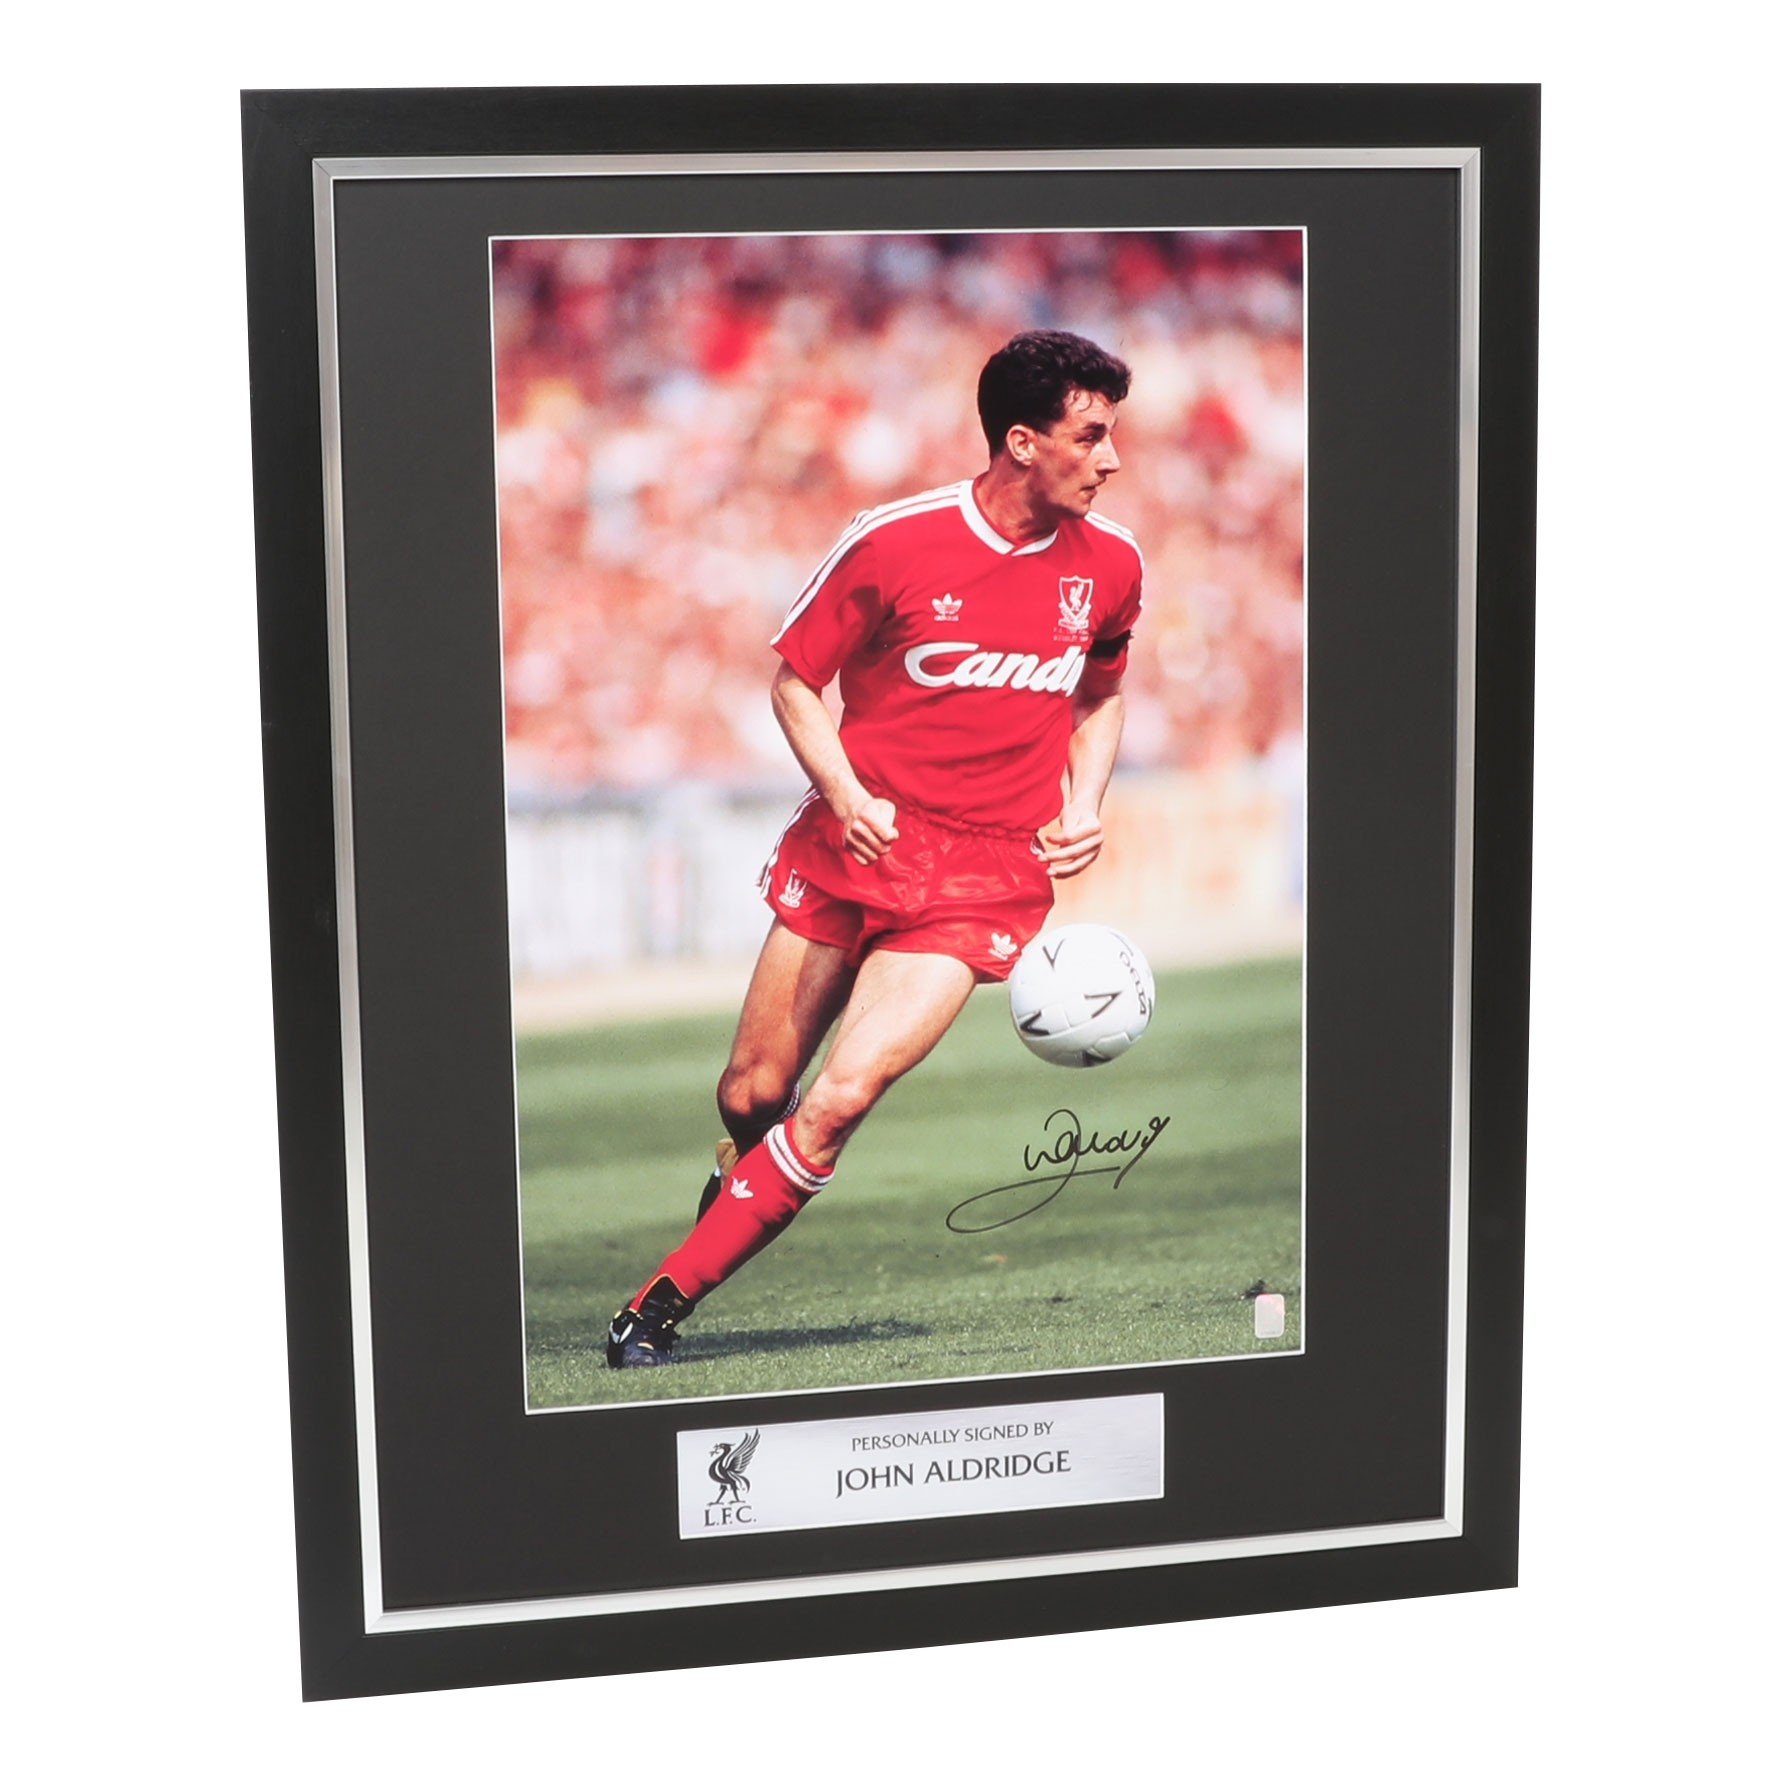 LFC Aldridge Signed Image